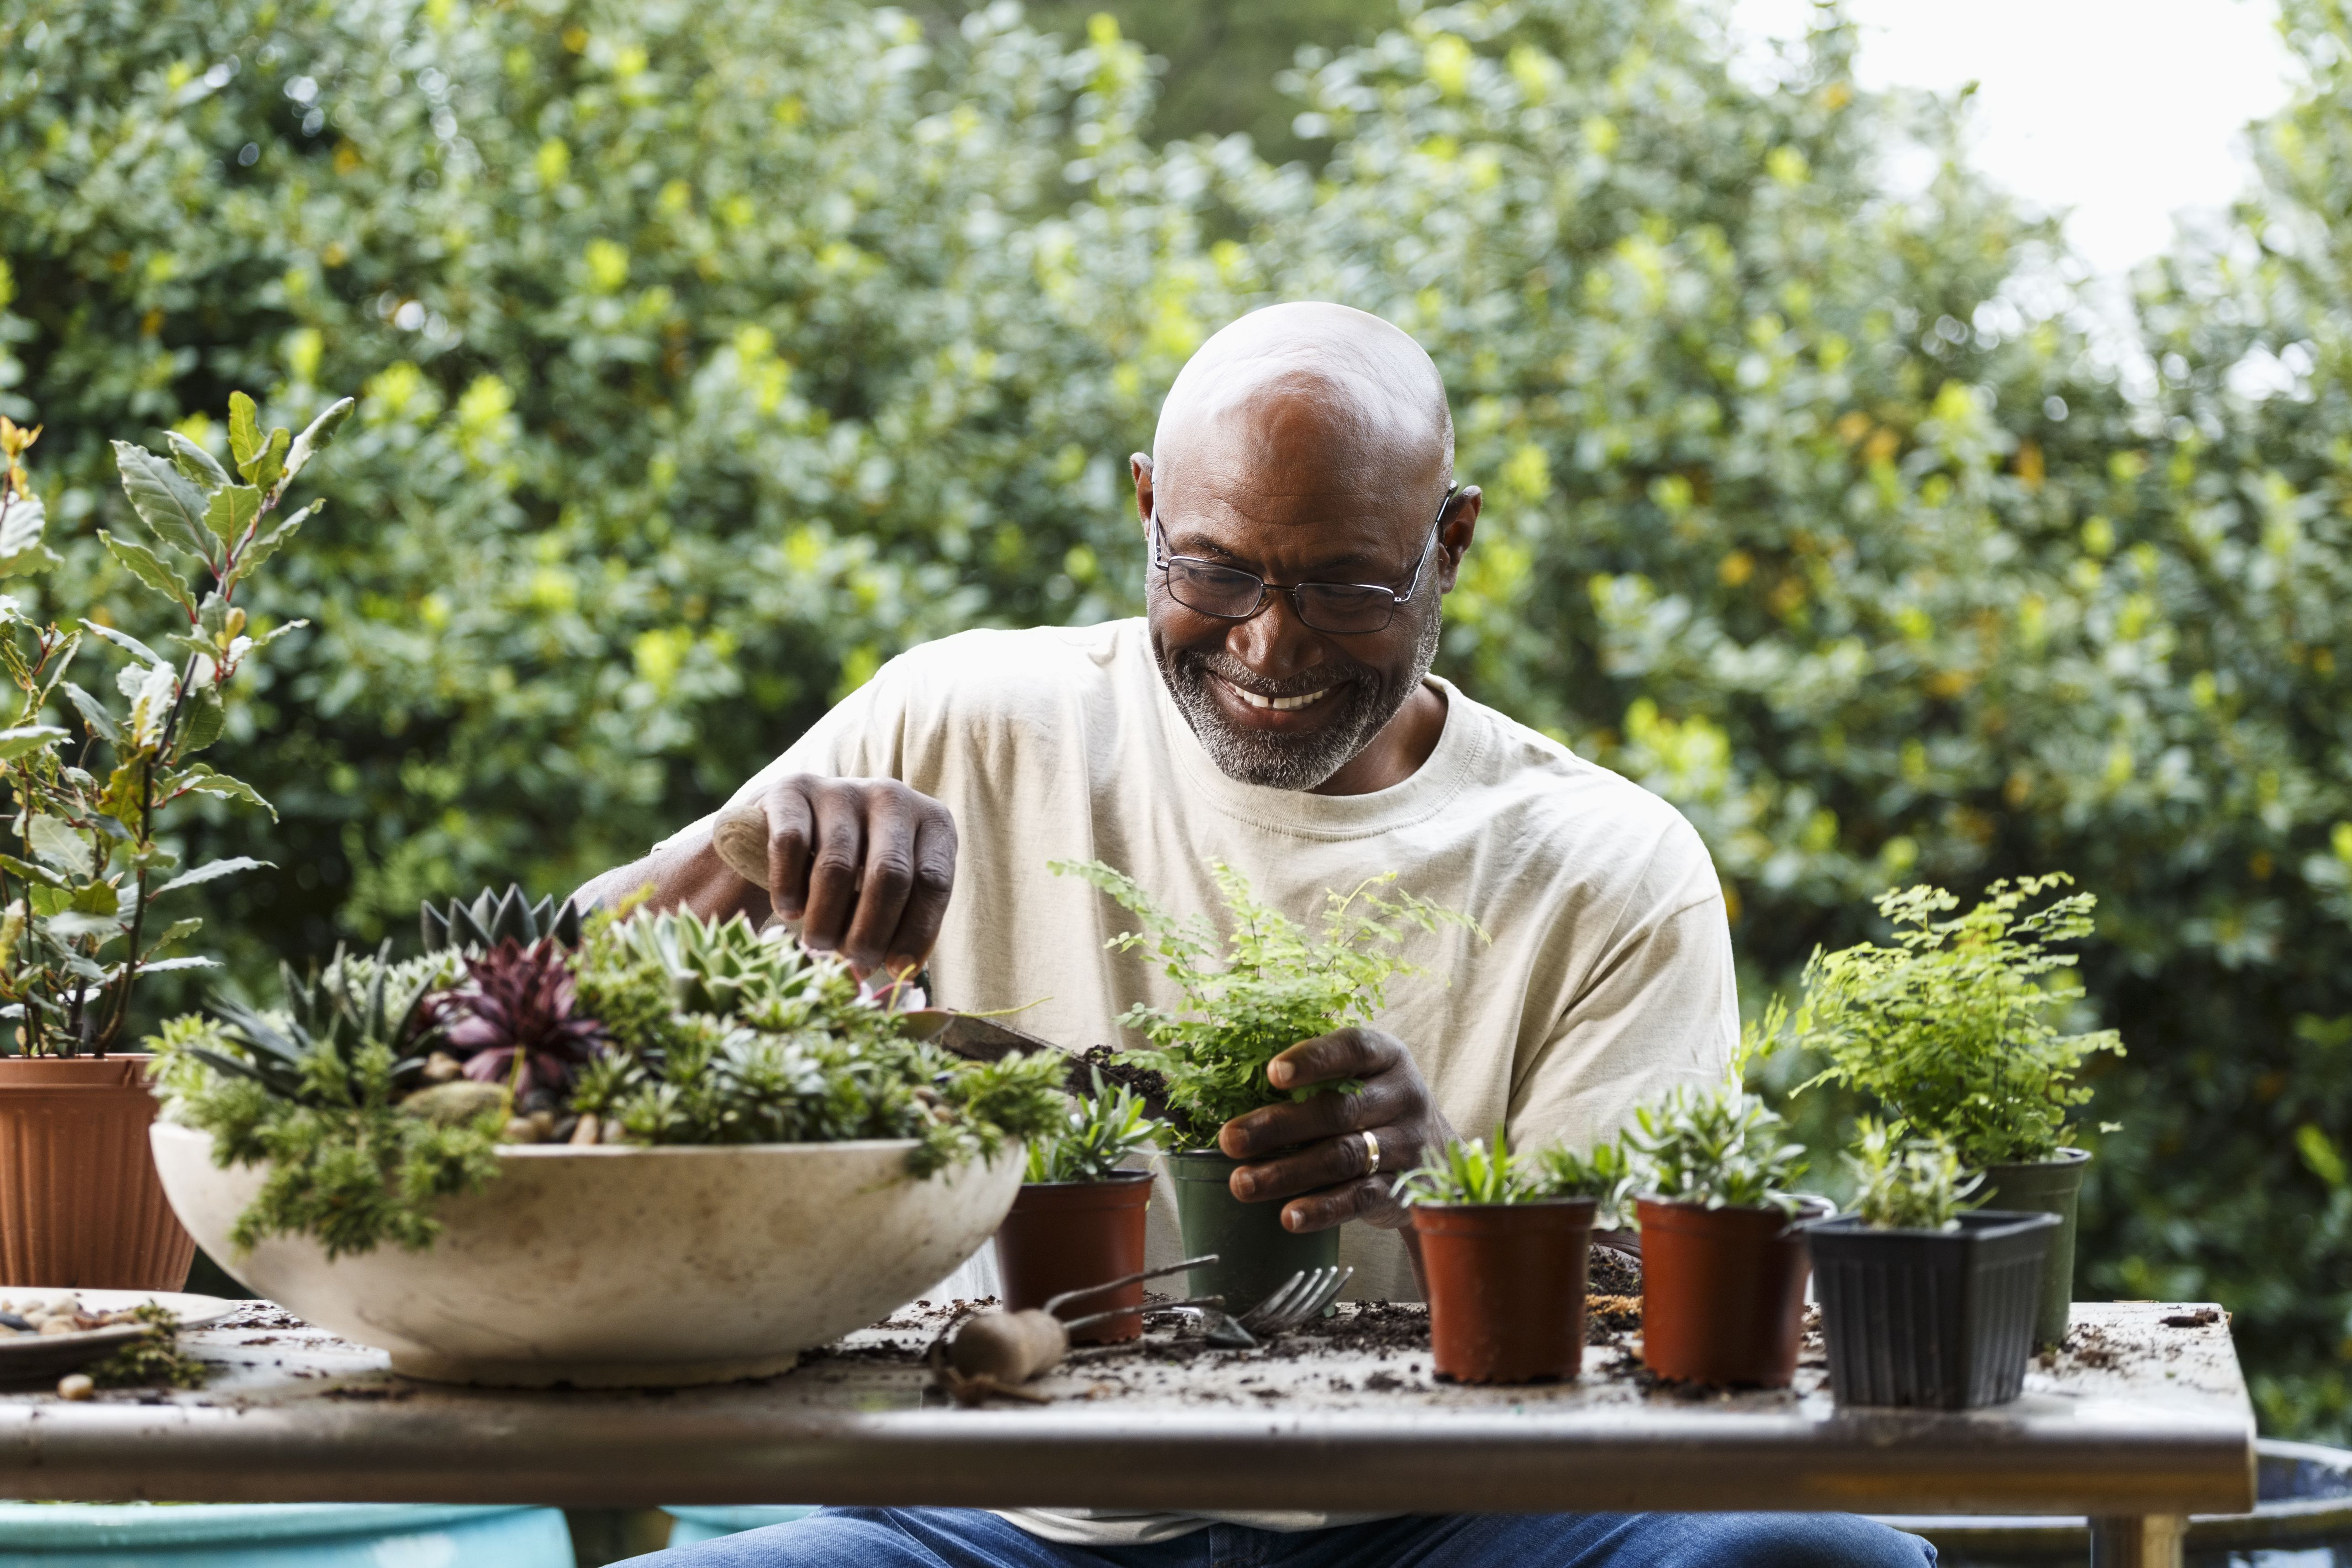 The 9 Best Gardening Gifts for Men in 2020